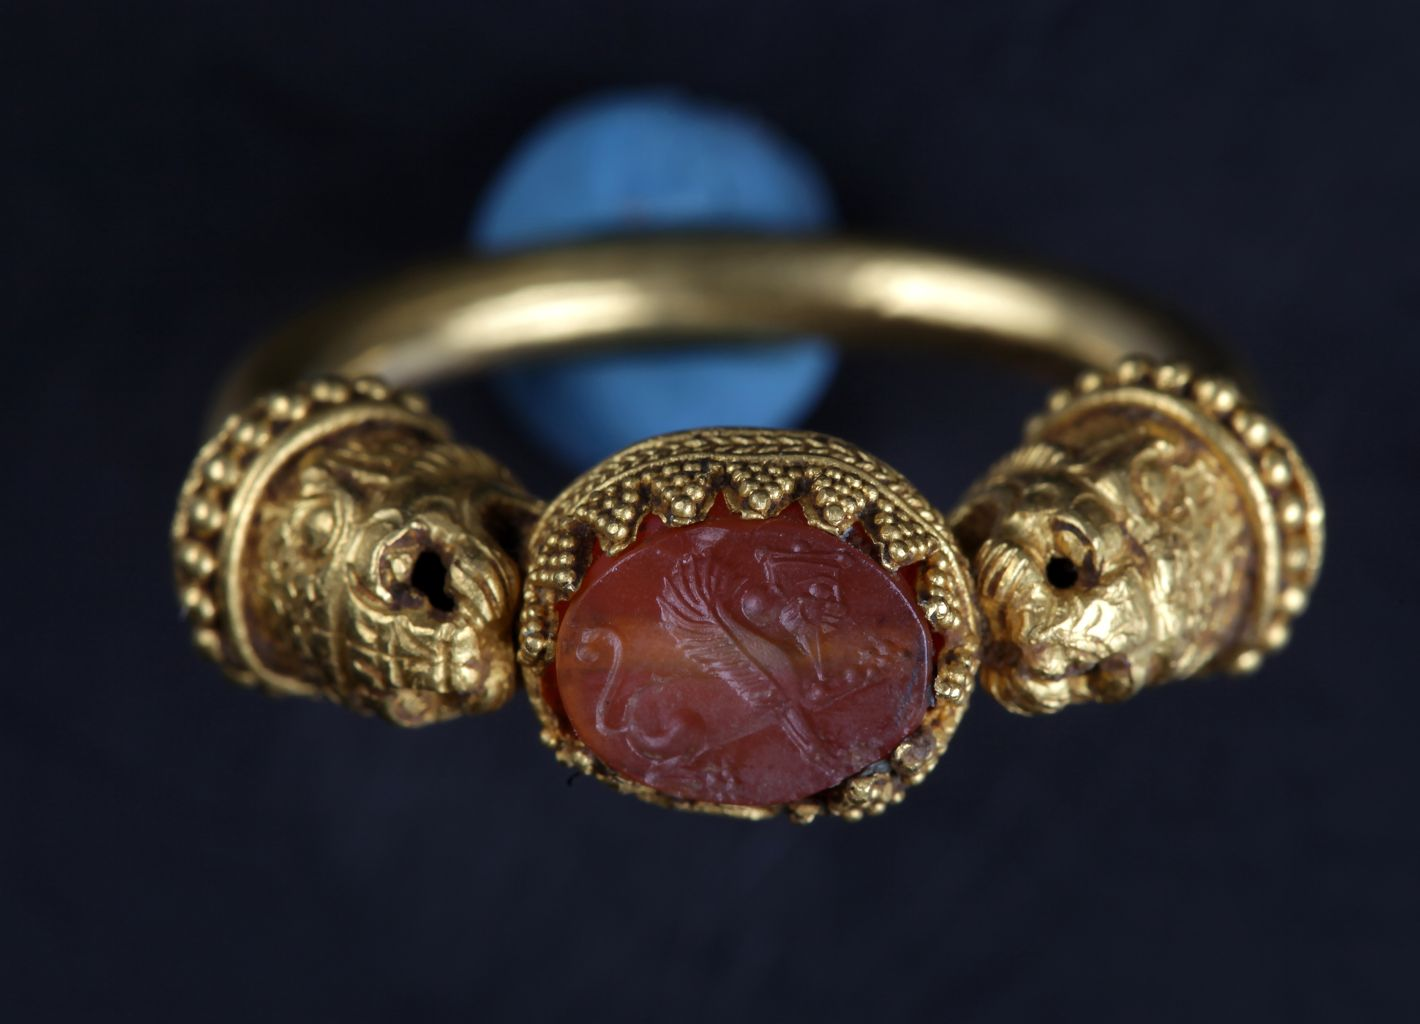 Gold seal ring with stone bezel